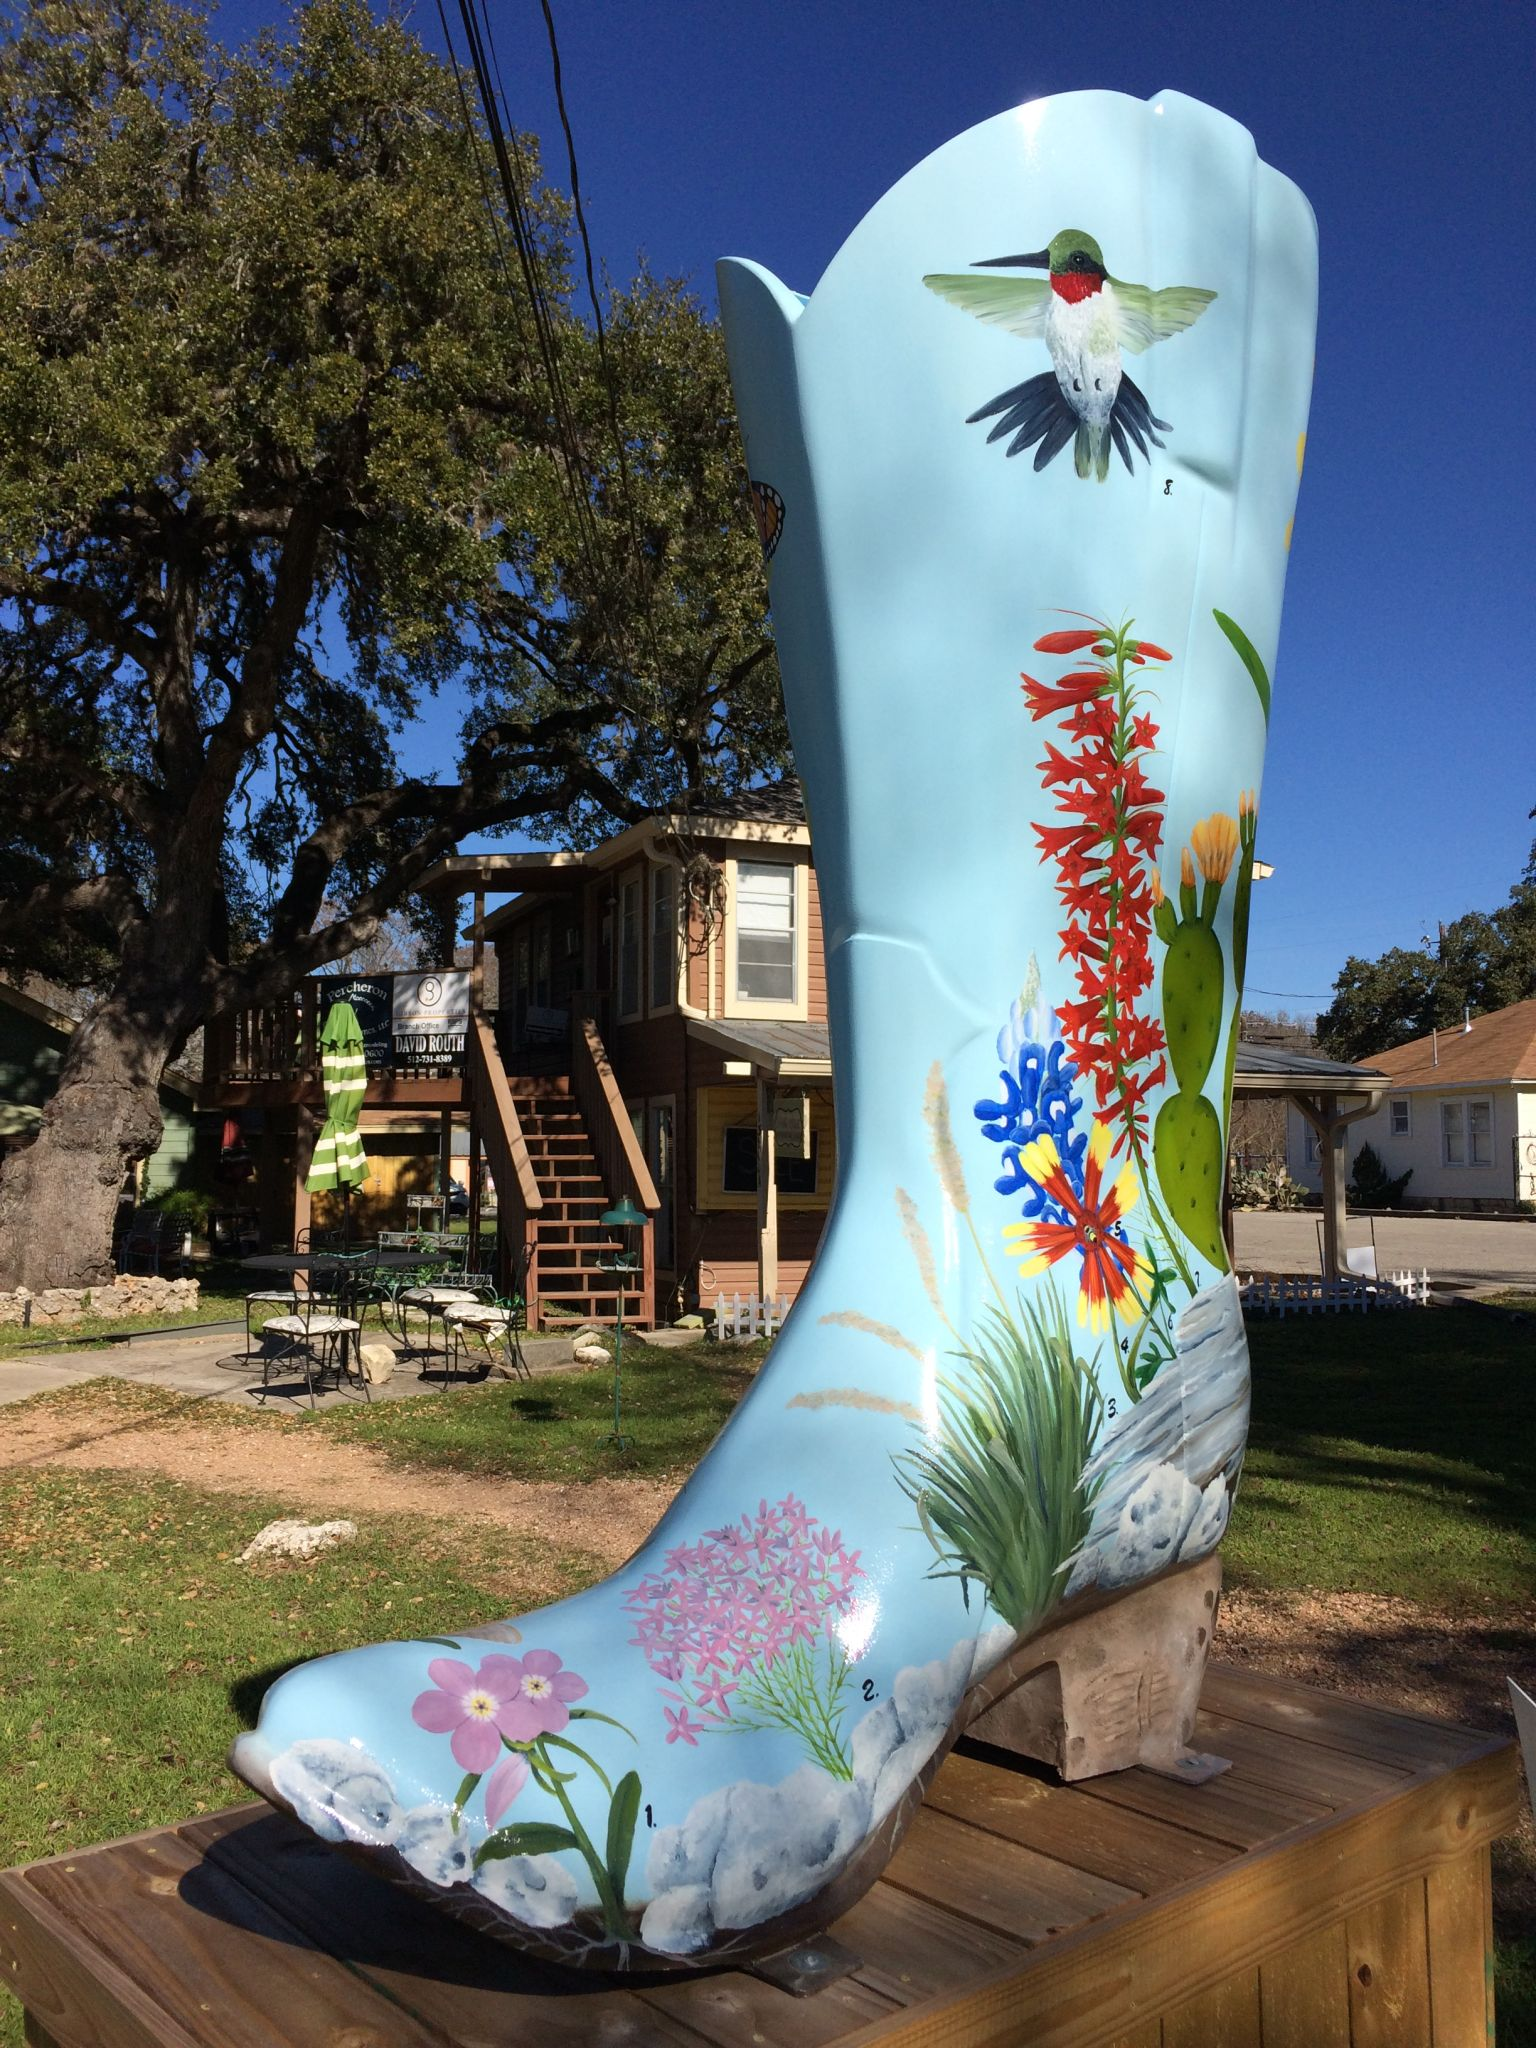 e5ec75cea575 24-hour Hill Country road trip - Houston Chronicle